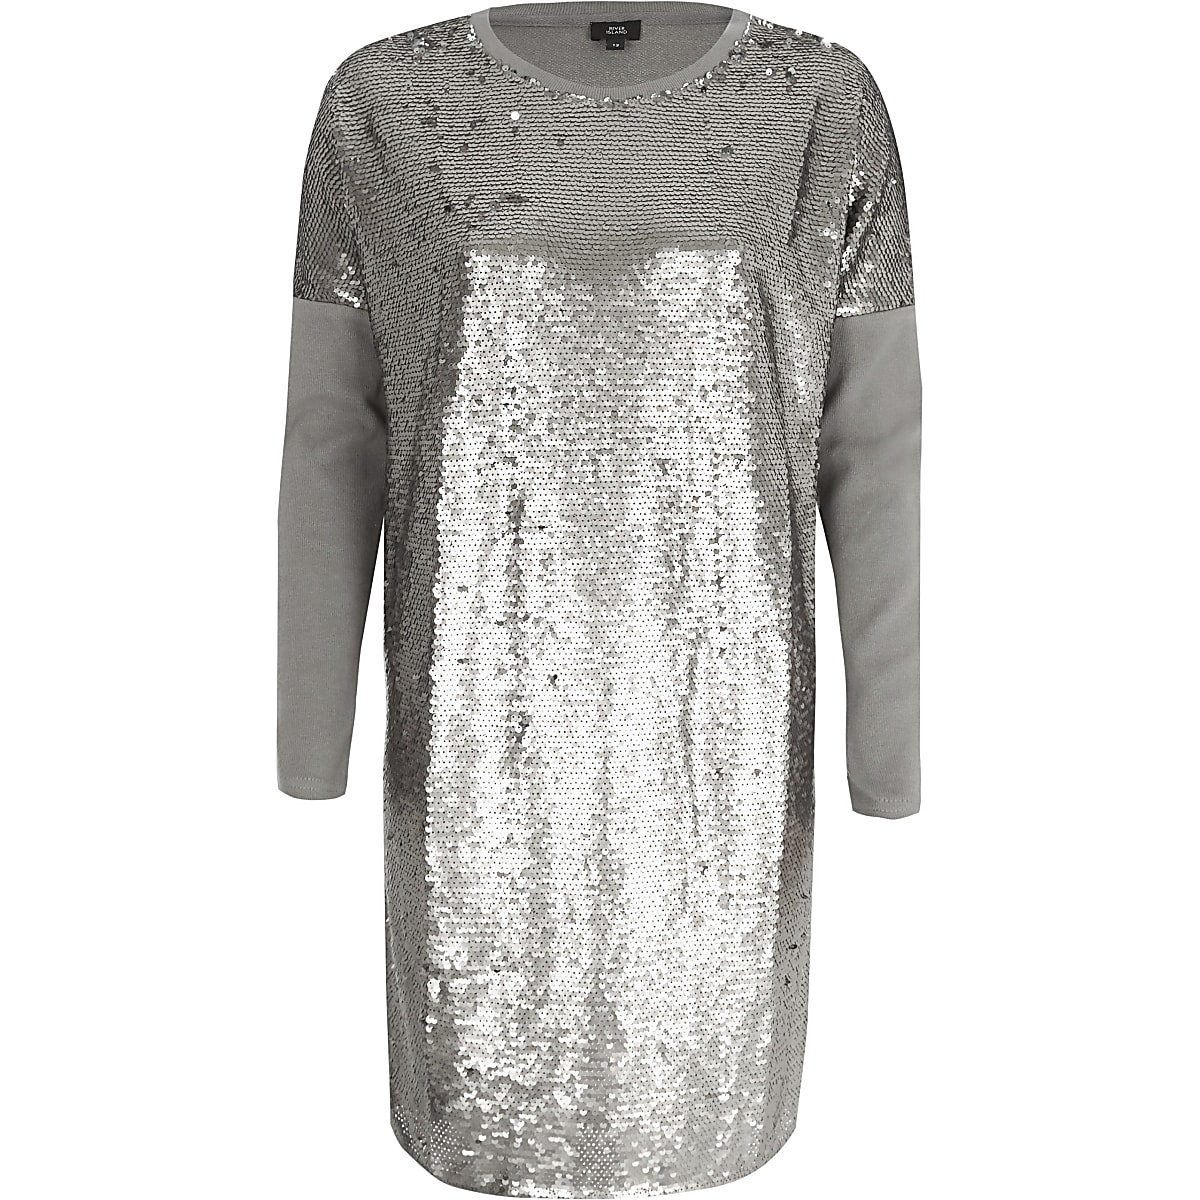 Silver sequin oversized long sleeve T-shirt